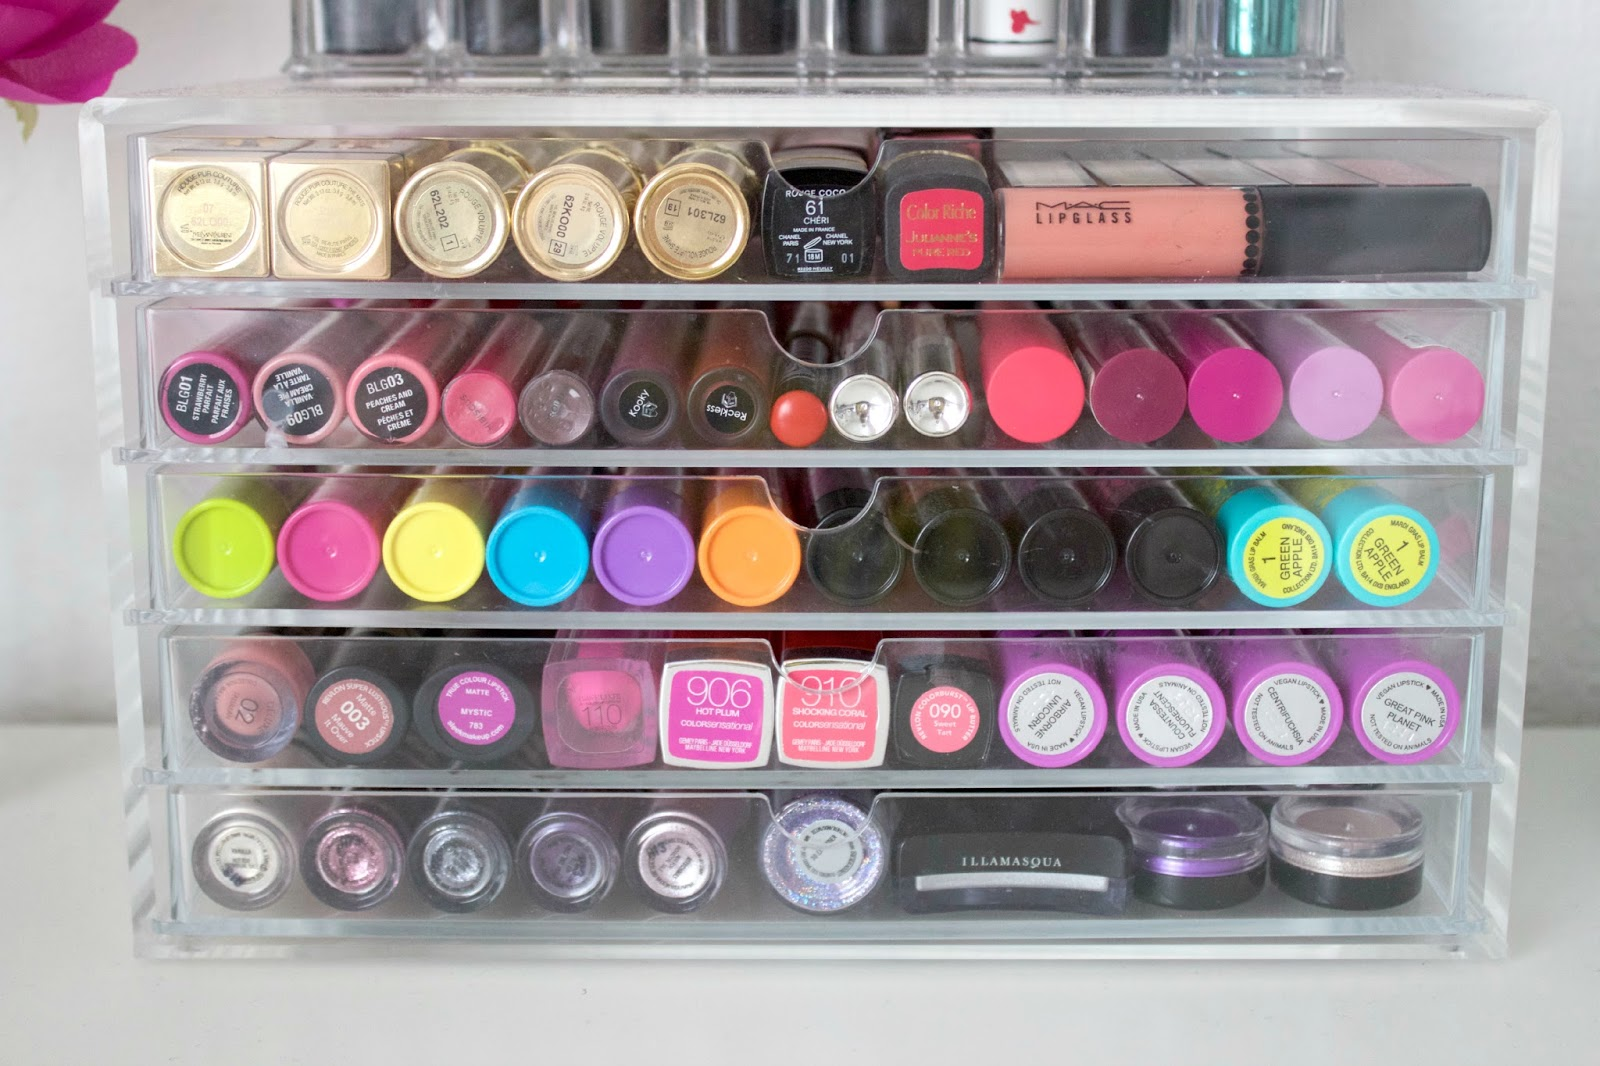 Acrylic makeup storage is very popular with Muji leading the way. Theyu0027ve earnt a very high praising in the beauty community. & Makeup Storage: Muji 5 Drawer - SColvinBeauty